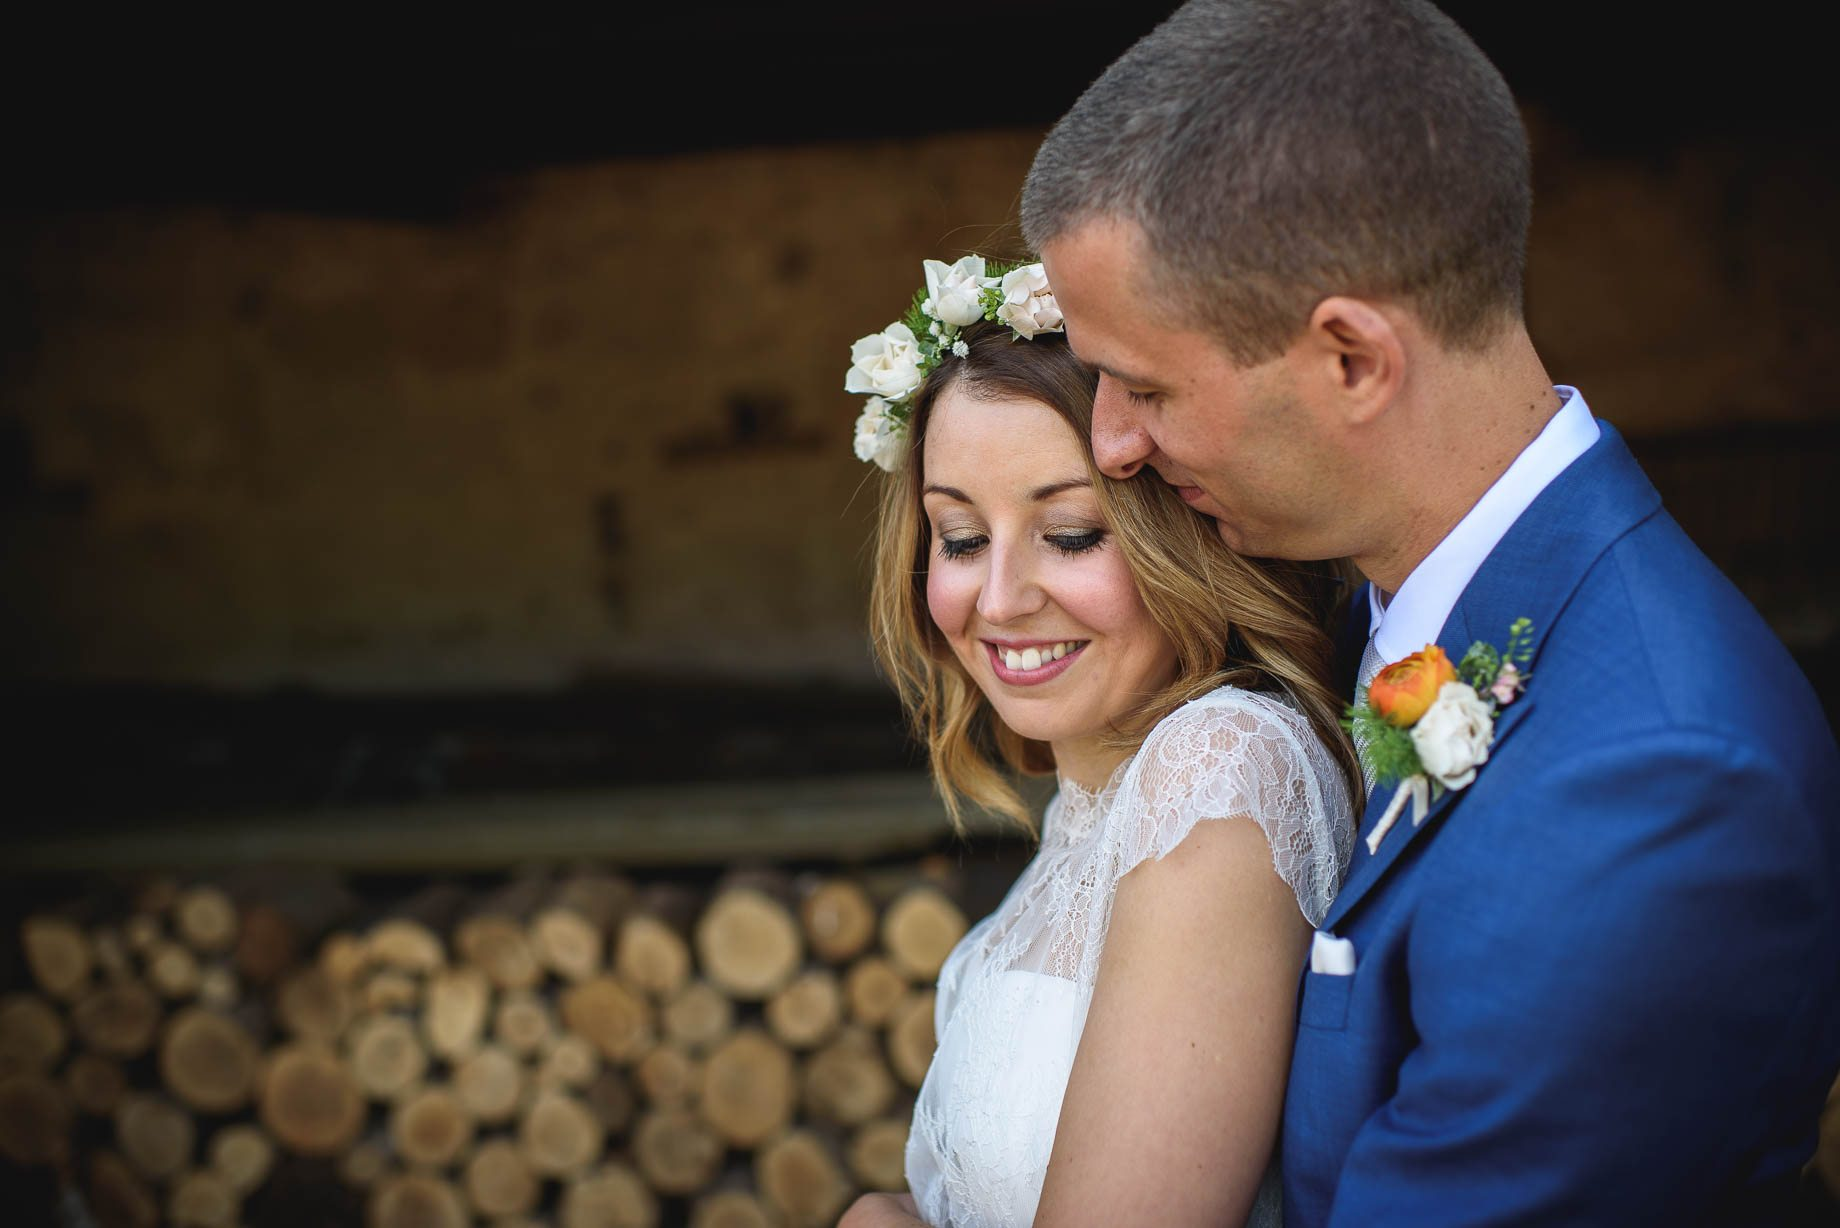 Bury Court Barn wedding photography by Guy Collier - Jo and Jamie (71 of 160)